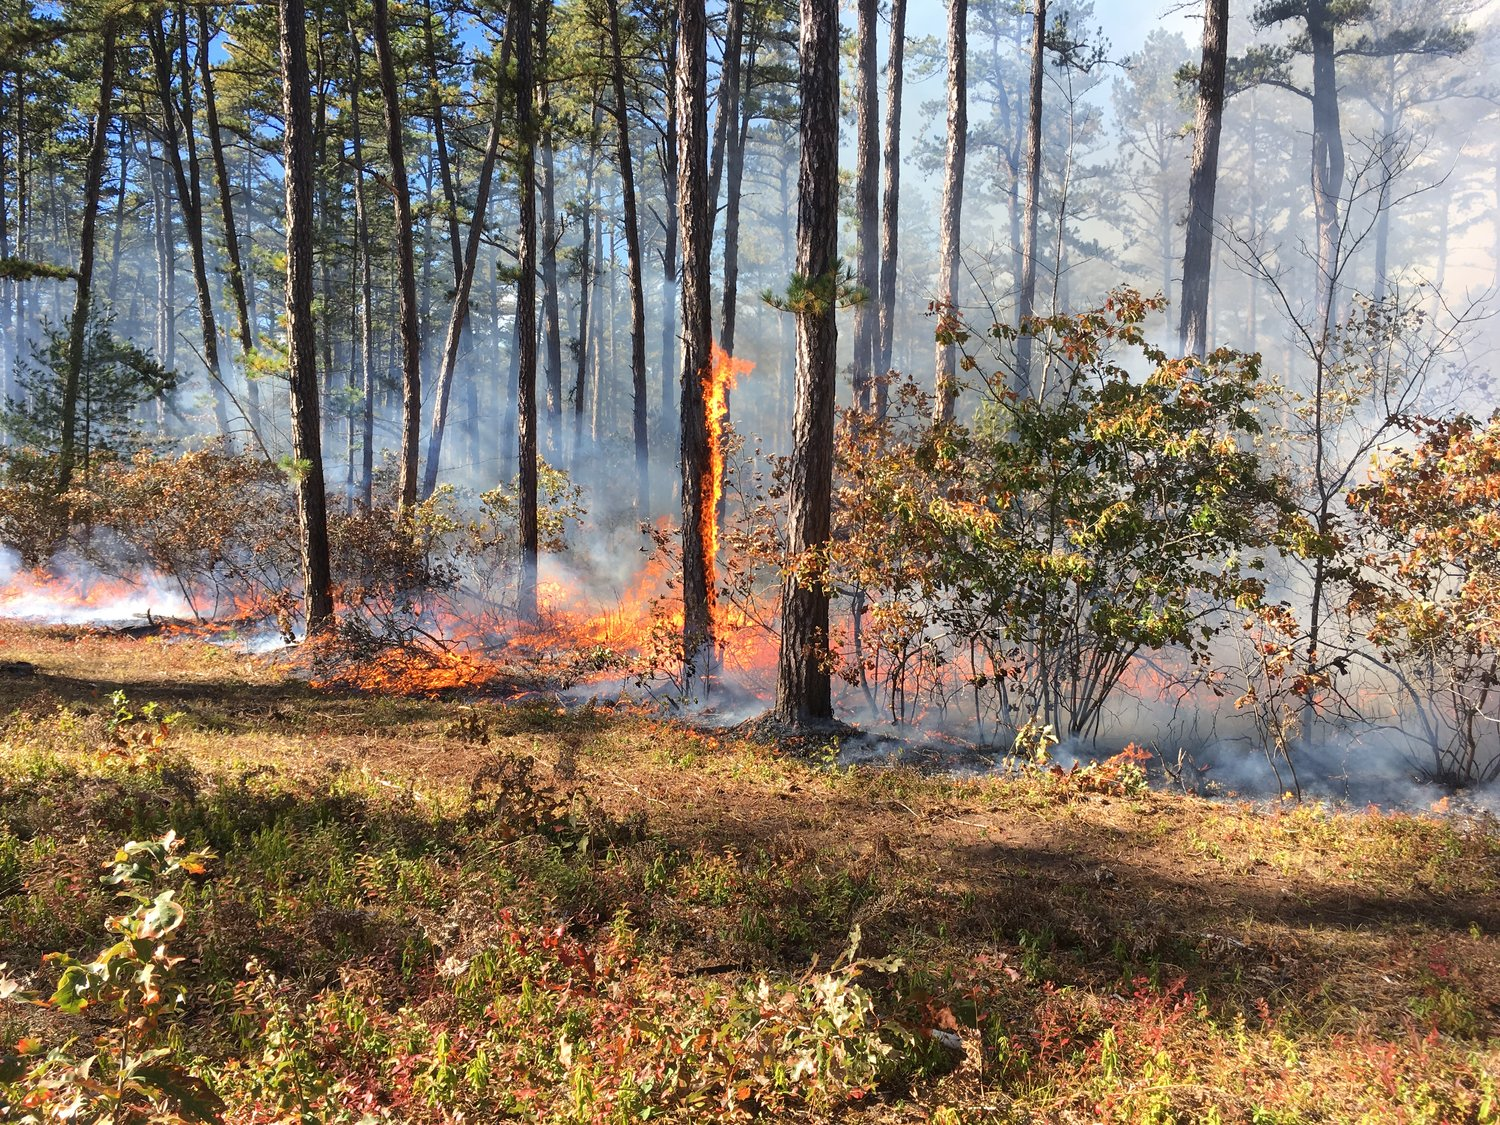 A controlled burn in a Pine Barren in northern New Hampshire. Photo by Taylor Quimby for New Hampshire Public Radio